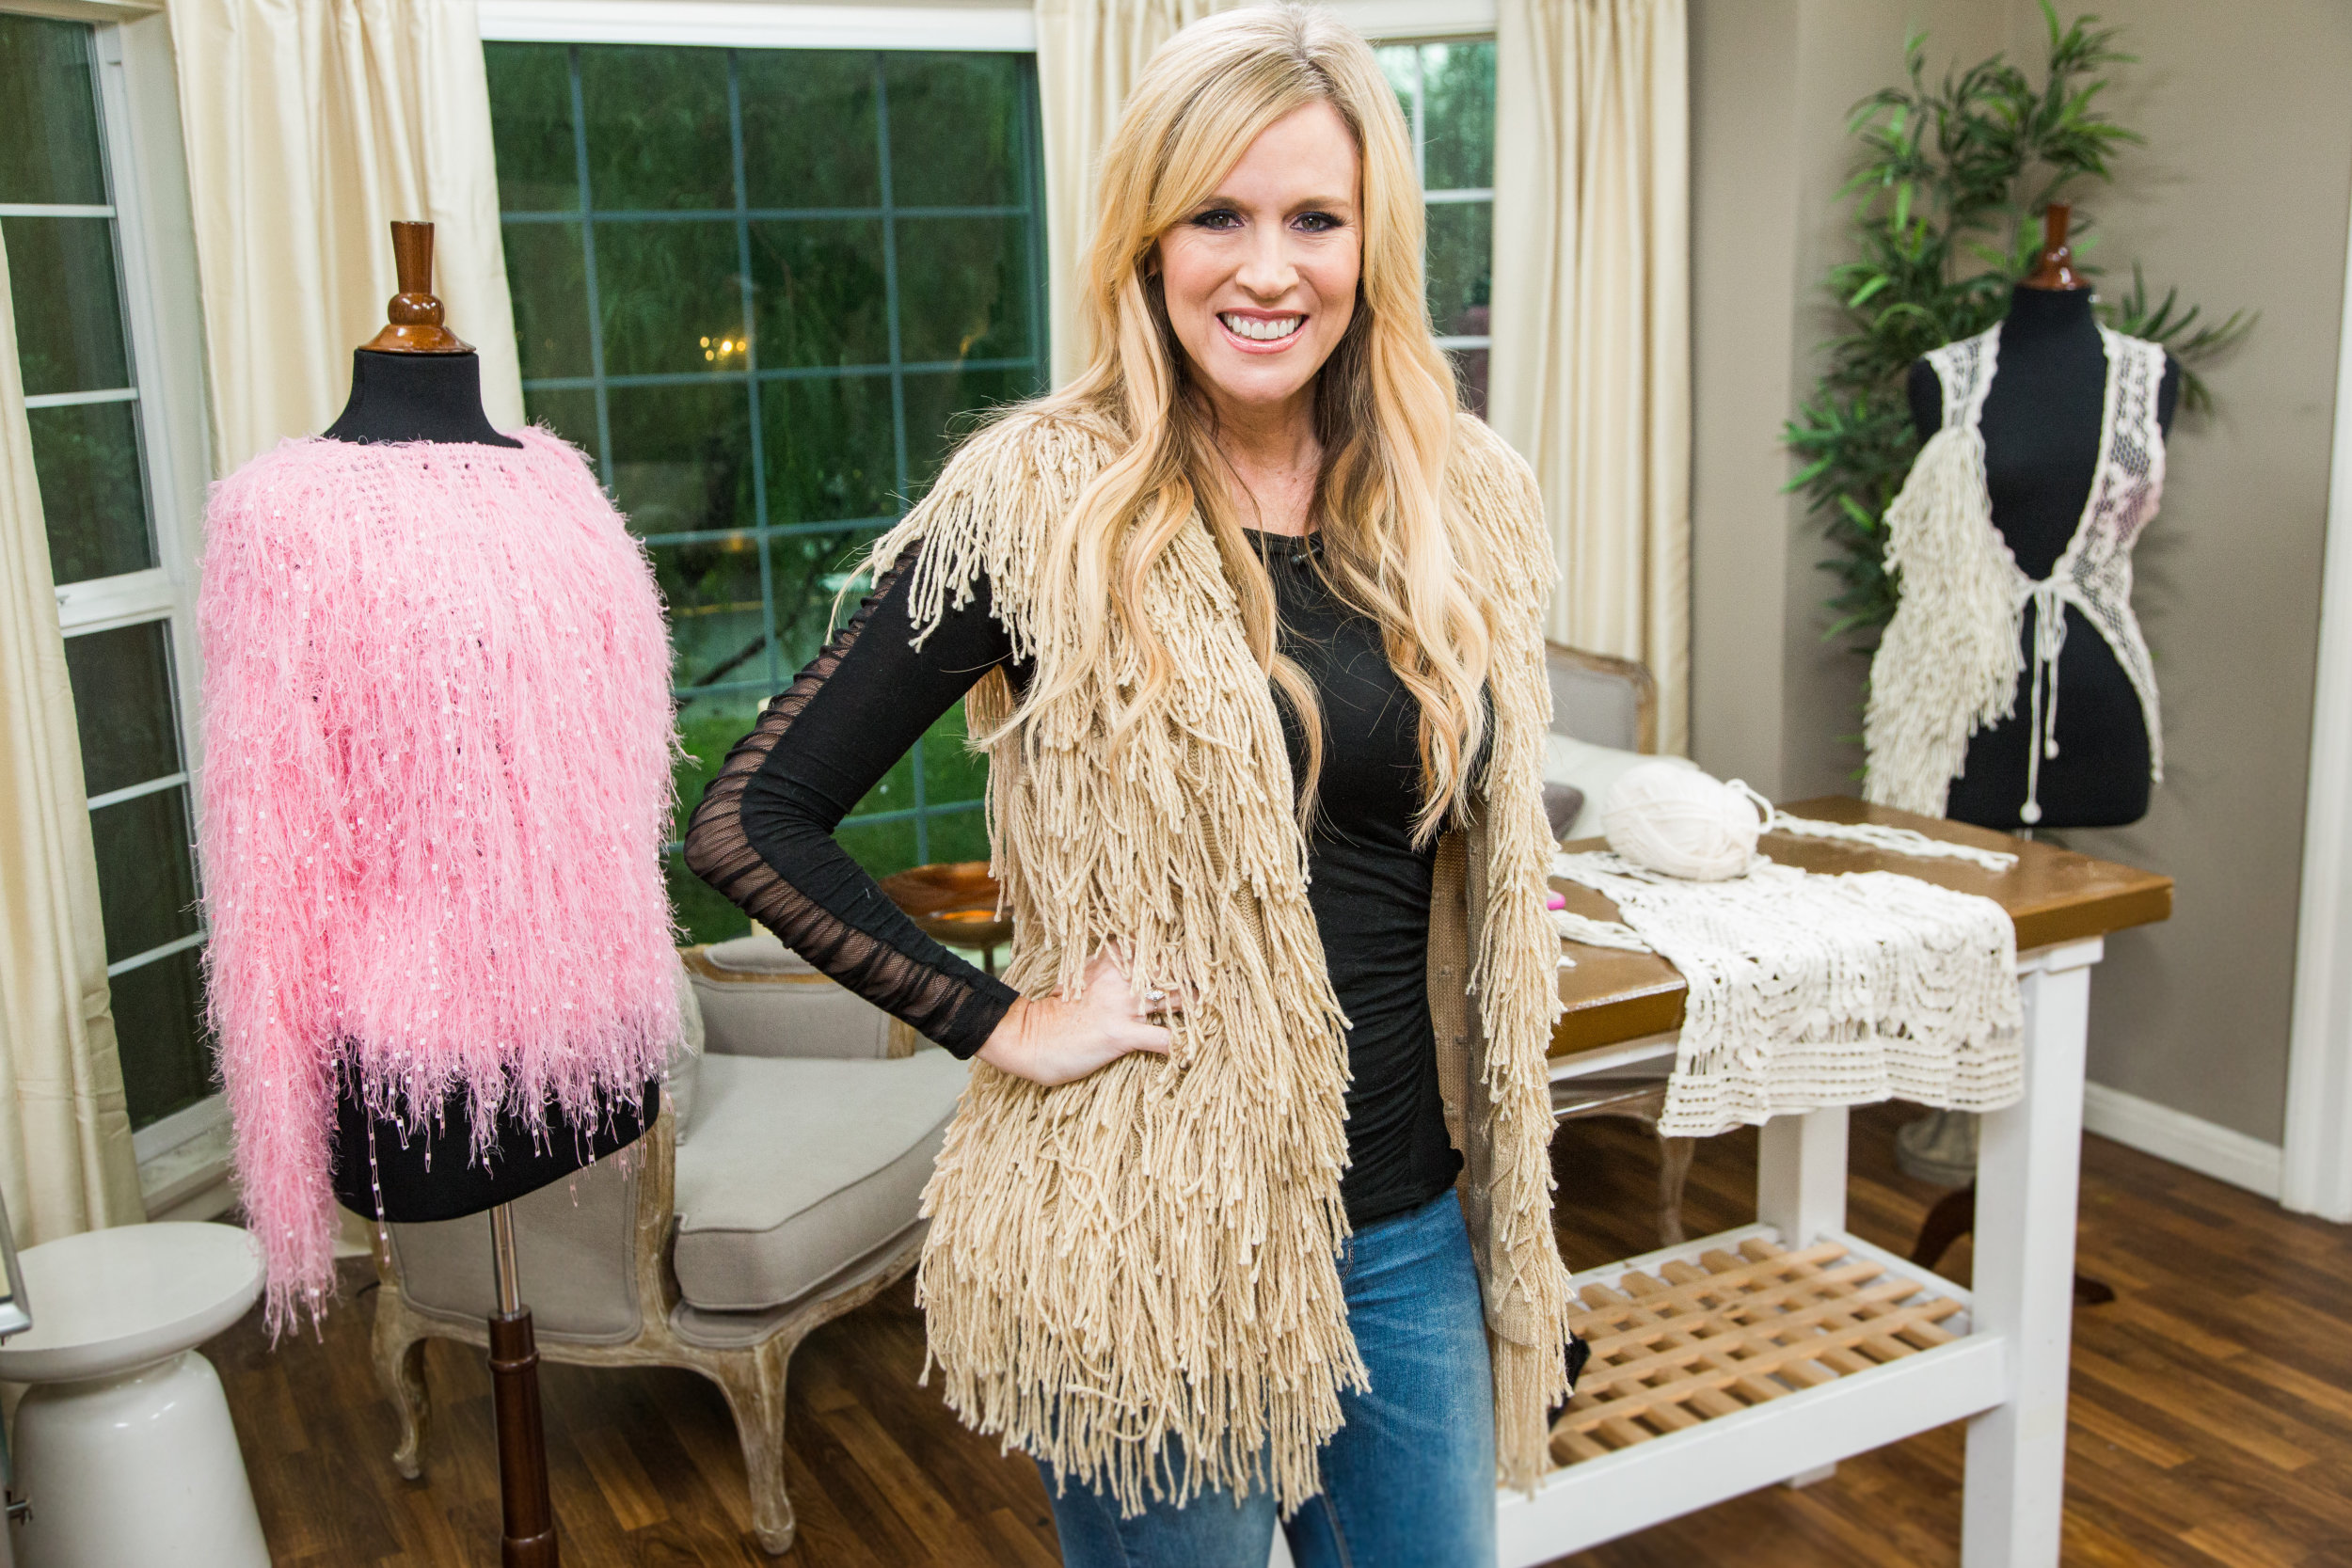 How To - DIY Shaggy Sweater Vest | Home & Family | Hallmark Channel